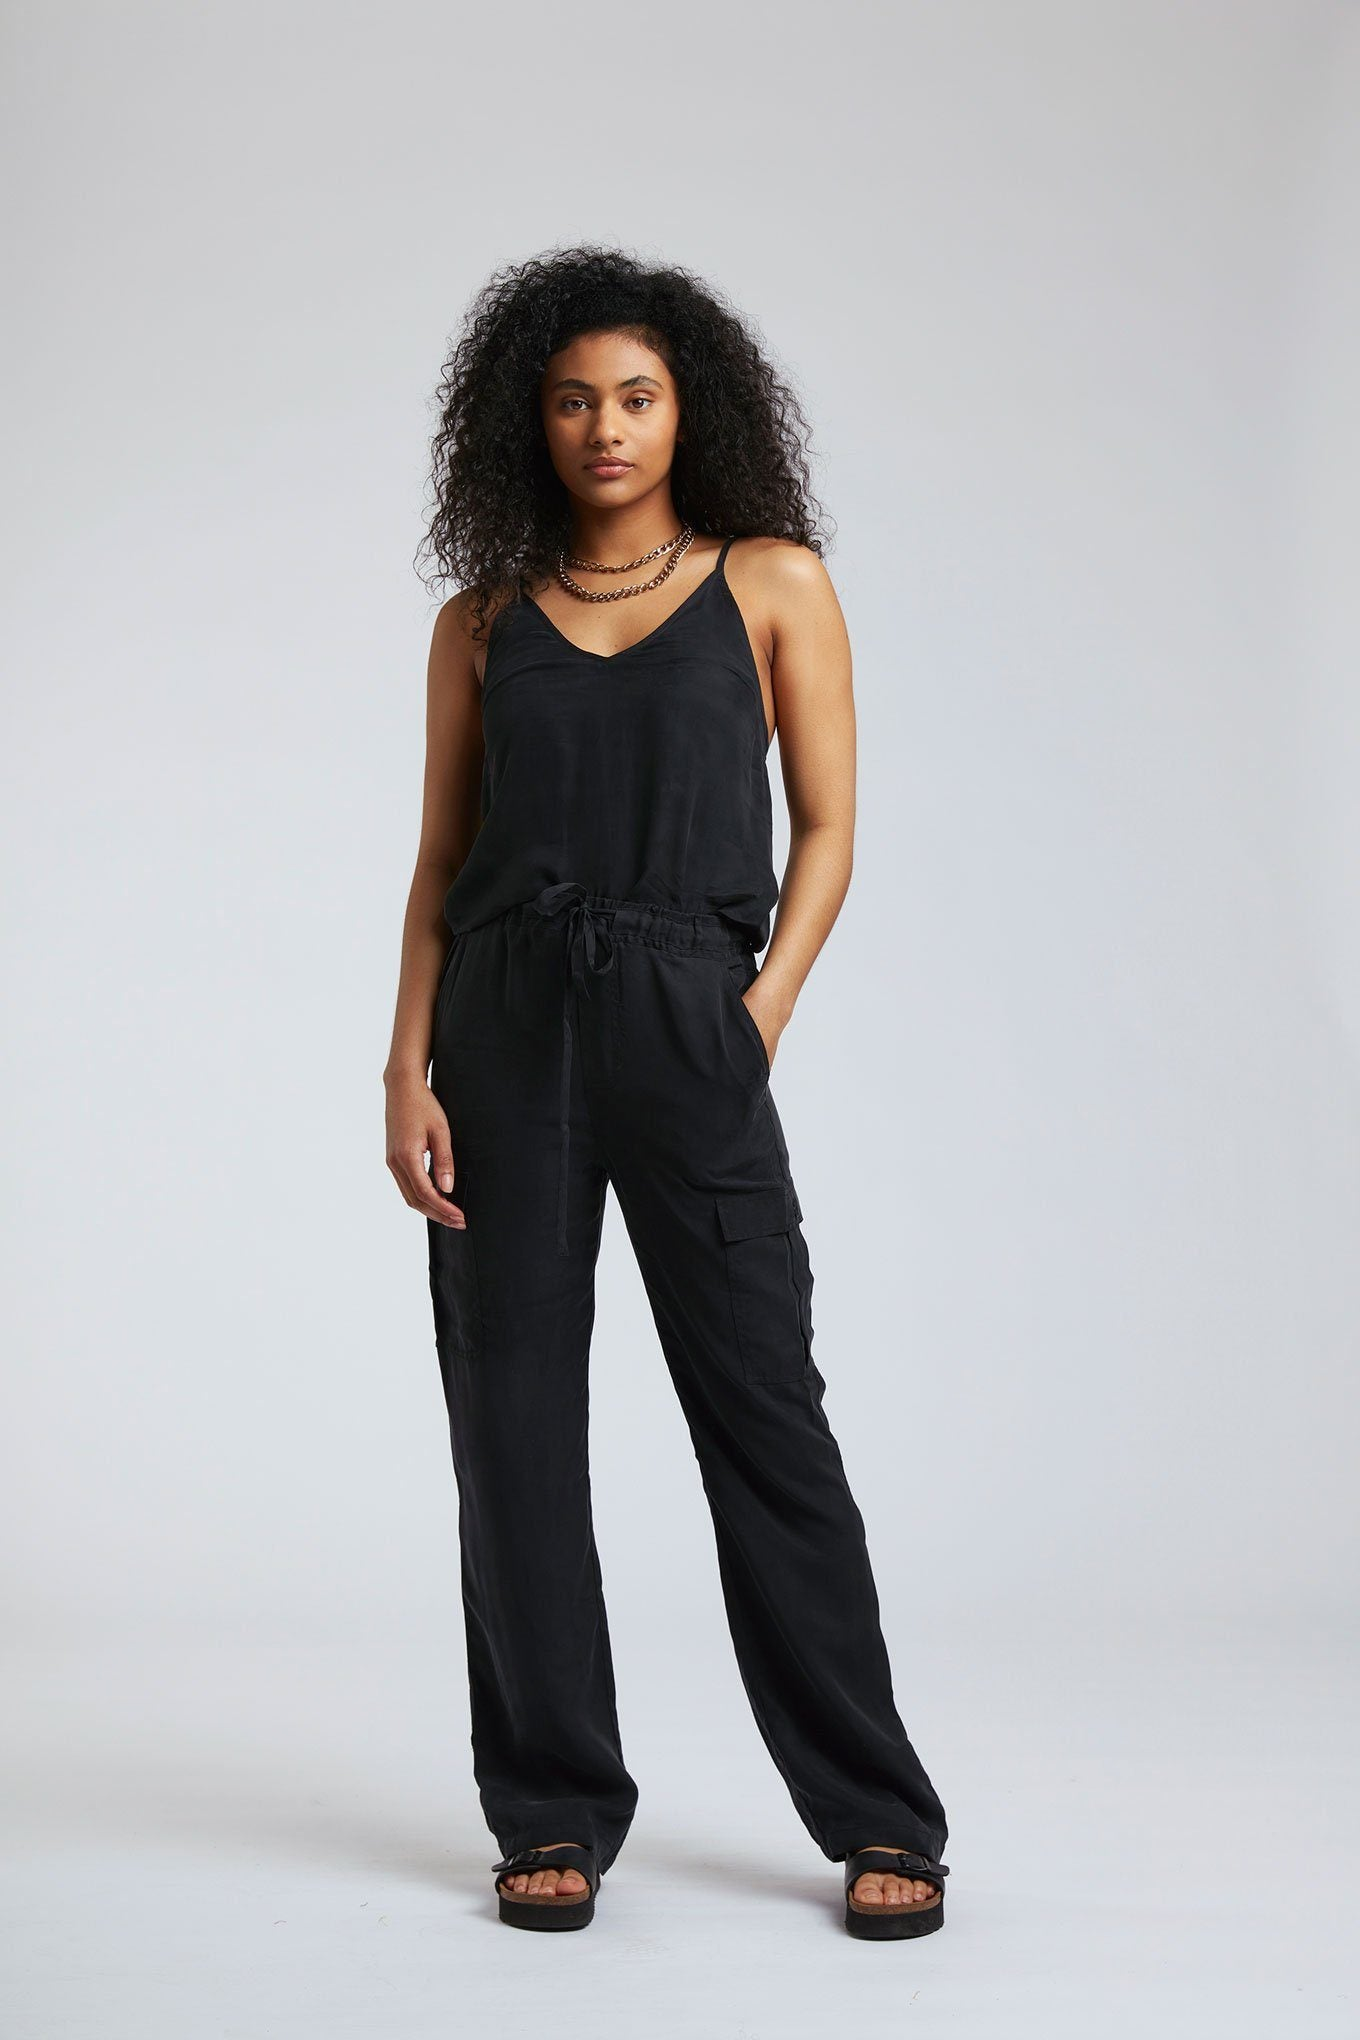 Trousers - DANNIELLE Cupro Trousers Black Coffee